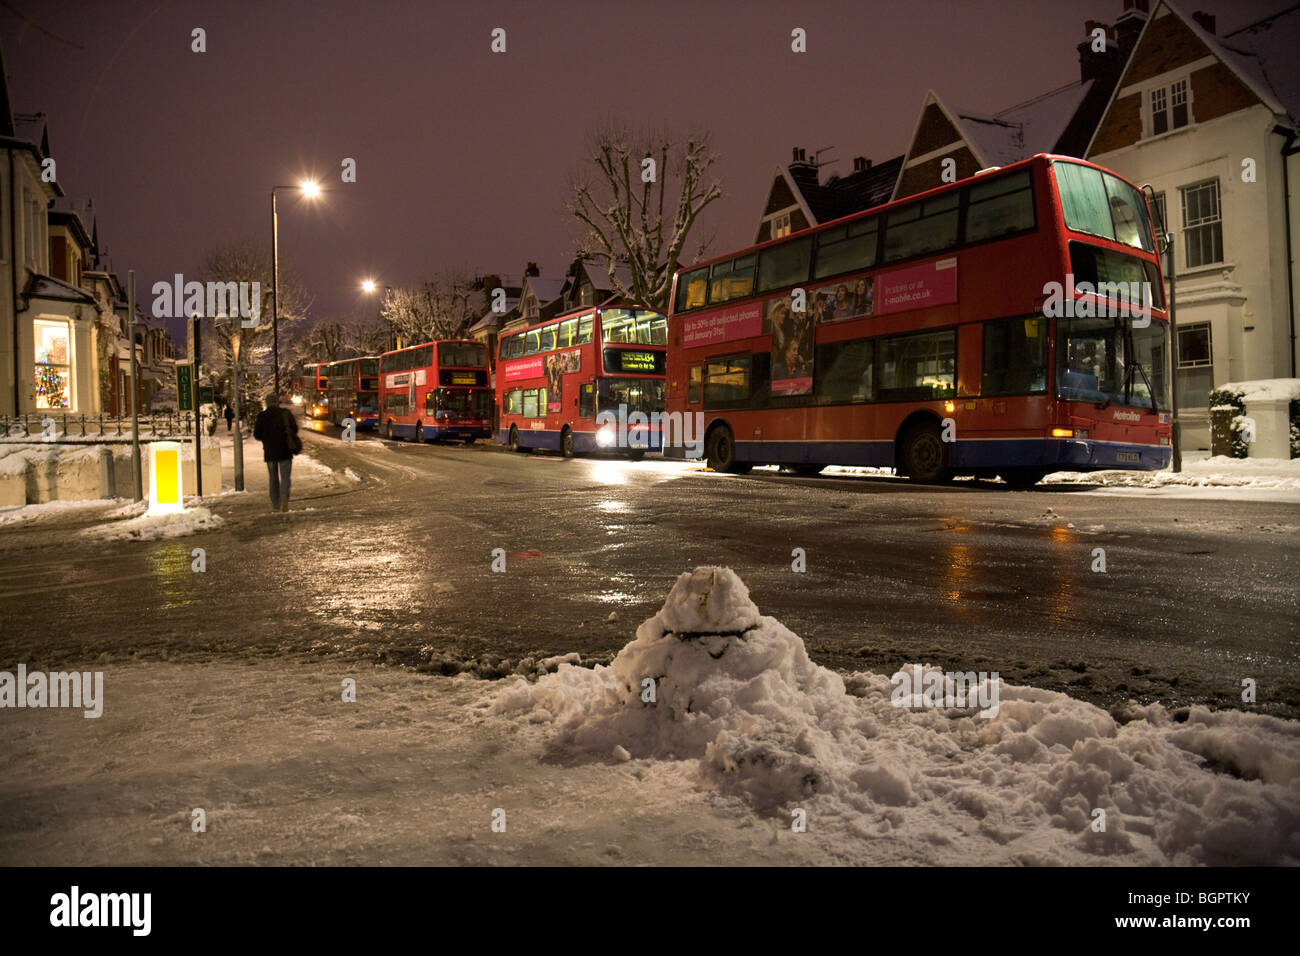 A line of out-of-service buses parked along Muswell Hill Road during the record-breaking icy cold spell in London, - Stock Image